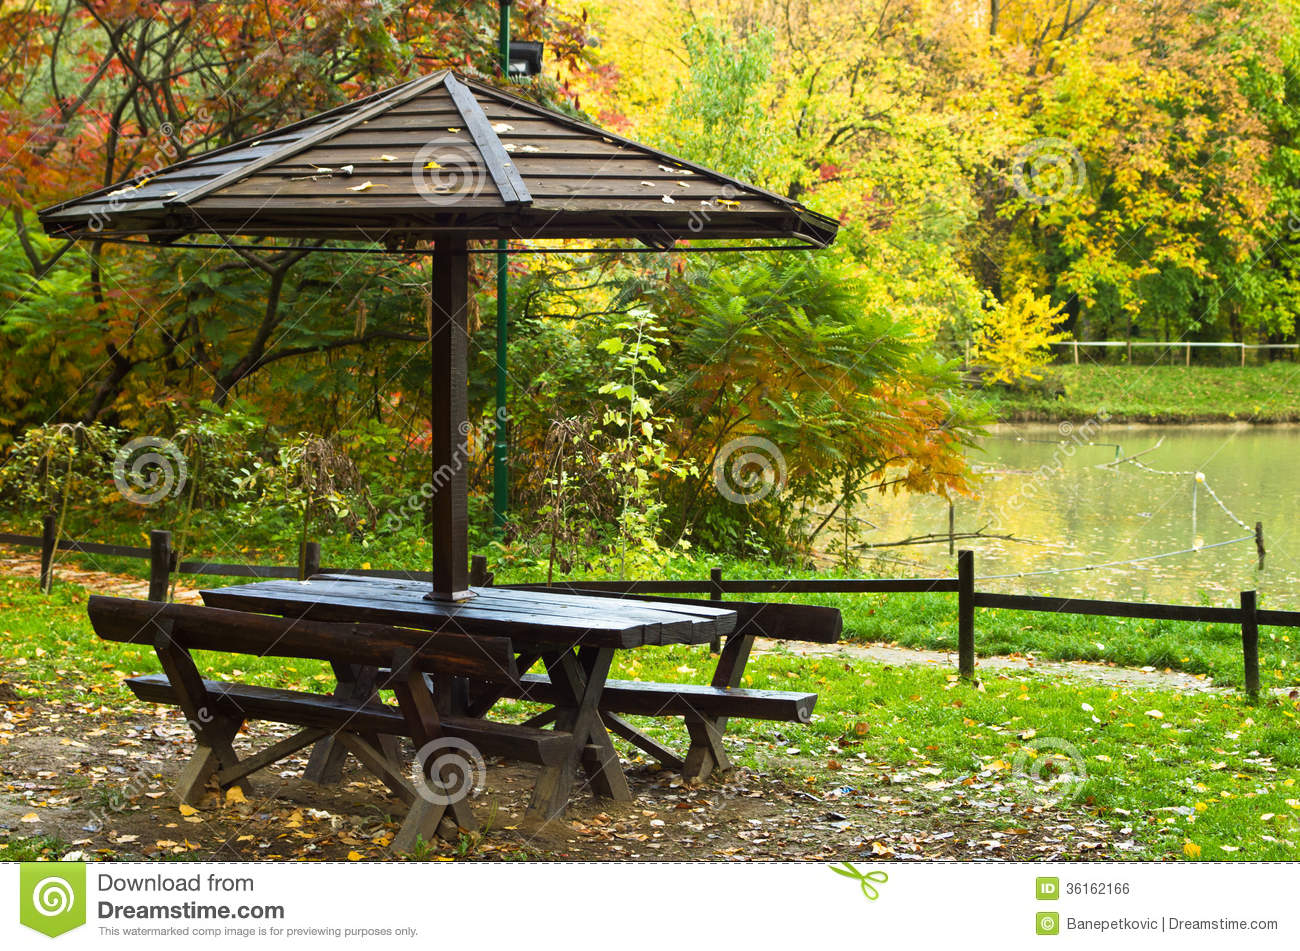 Picnic Table By The Lake Surrounded By The Forest In Autumn Colors Royalty  Free Stock Image